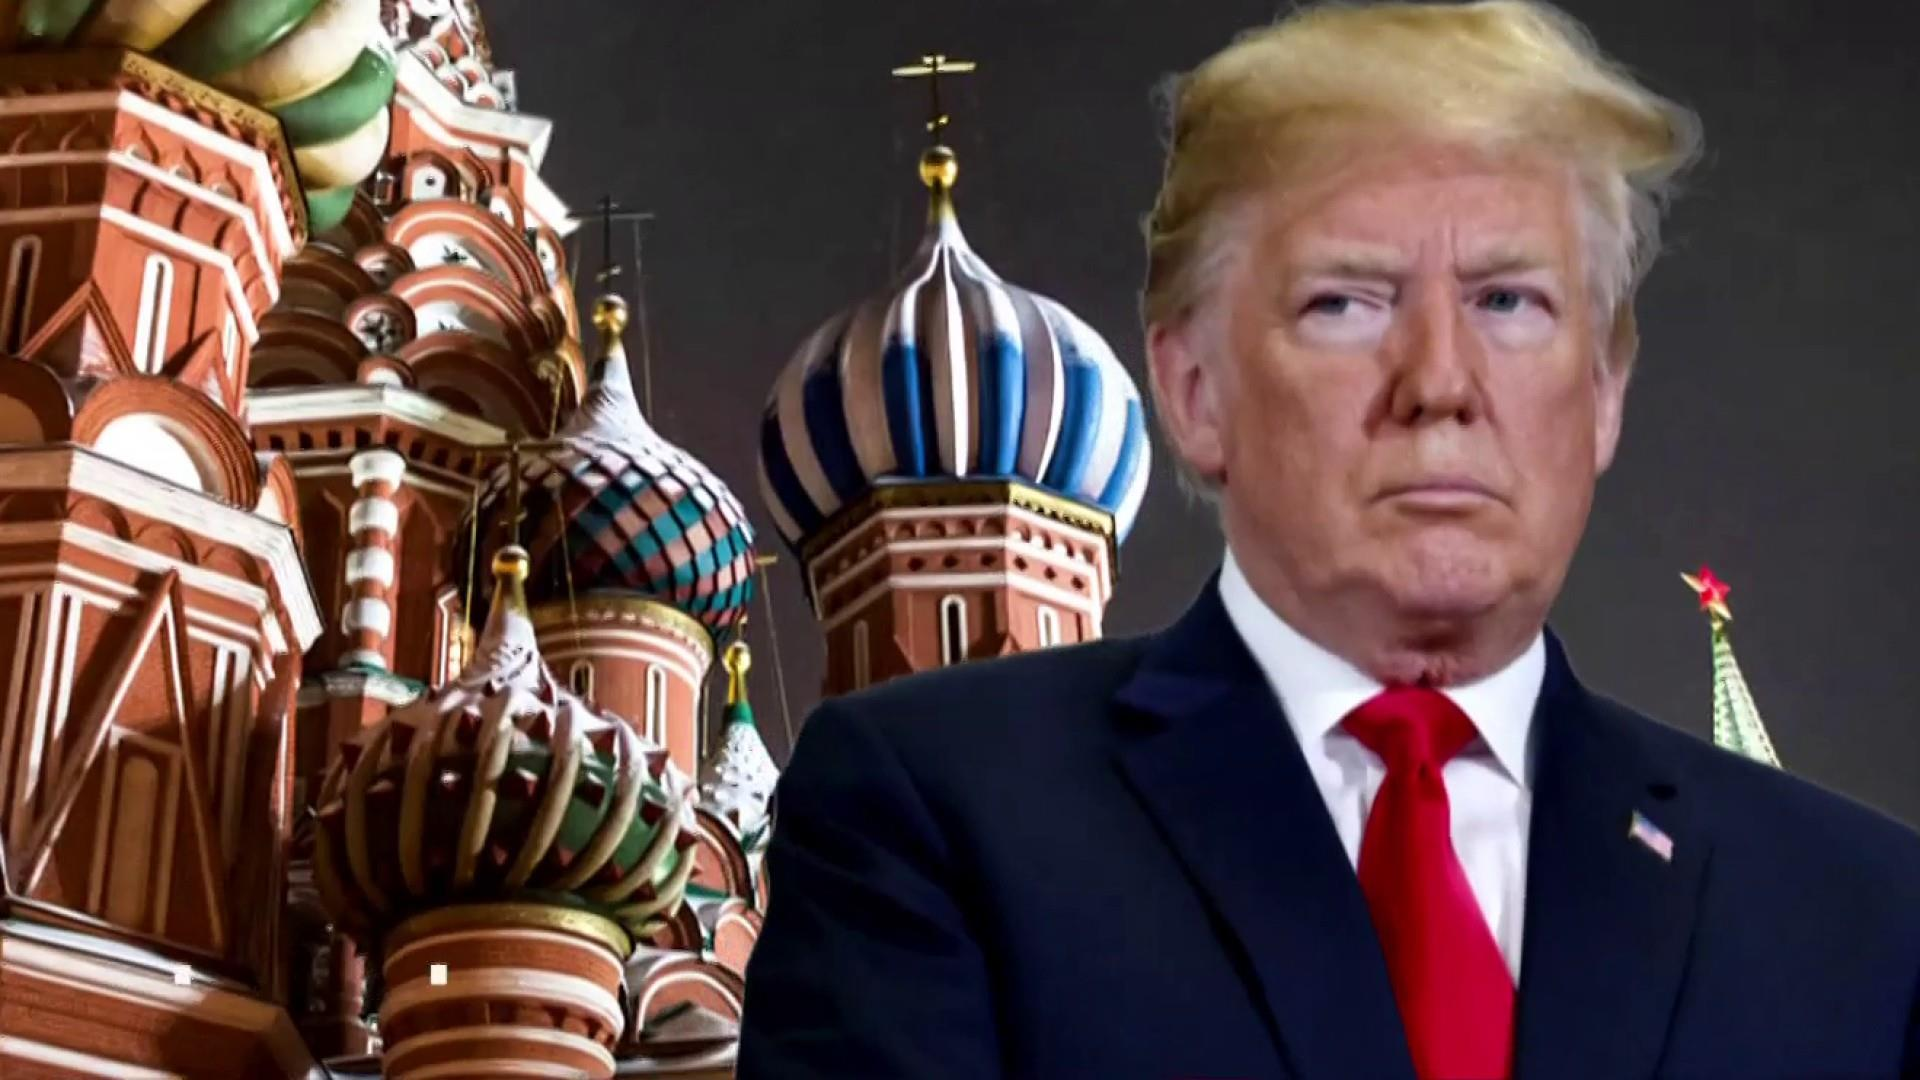 NYT: FBI investigated whether Trump was secretly working for Russia